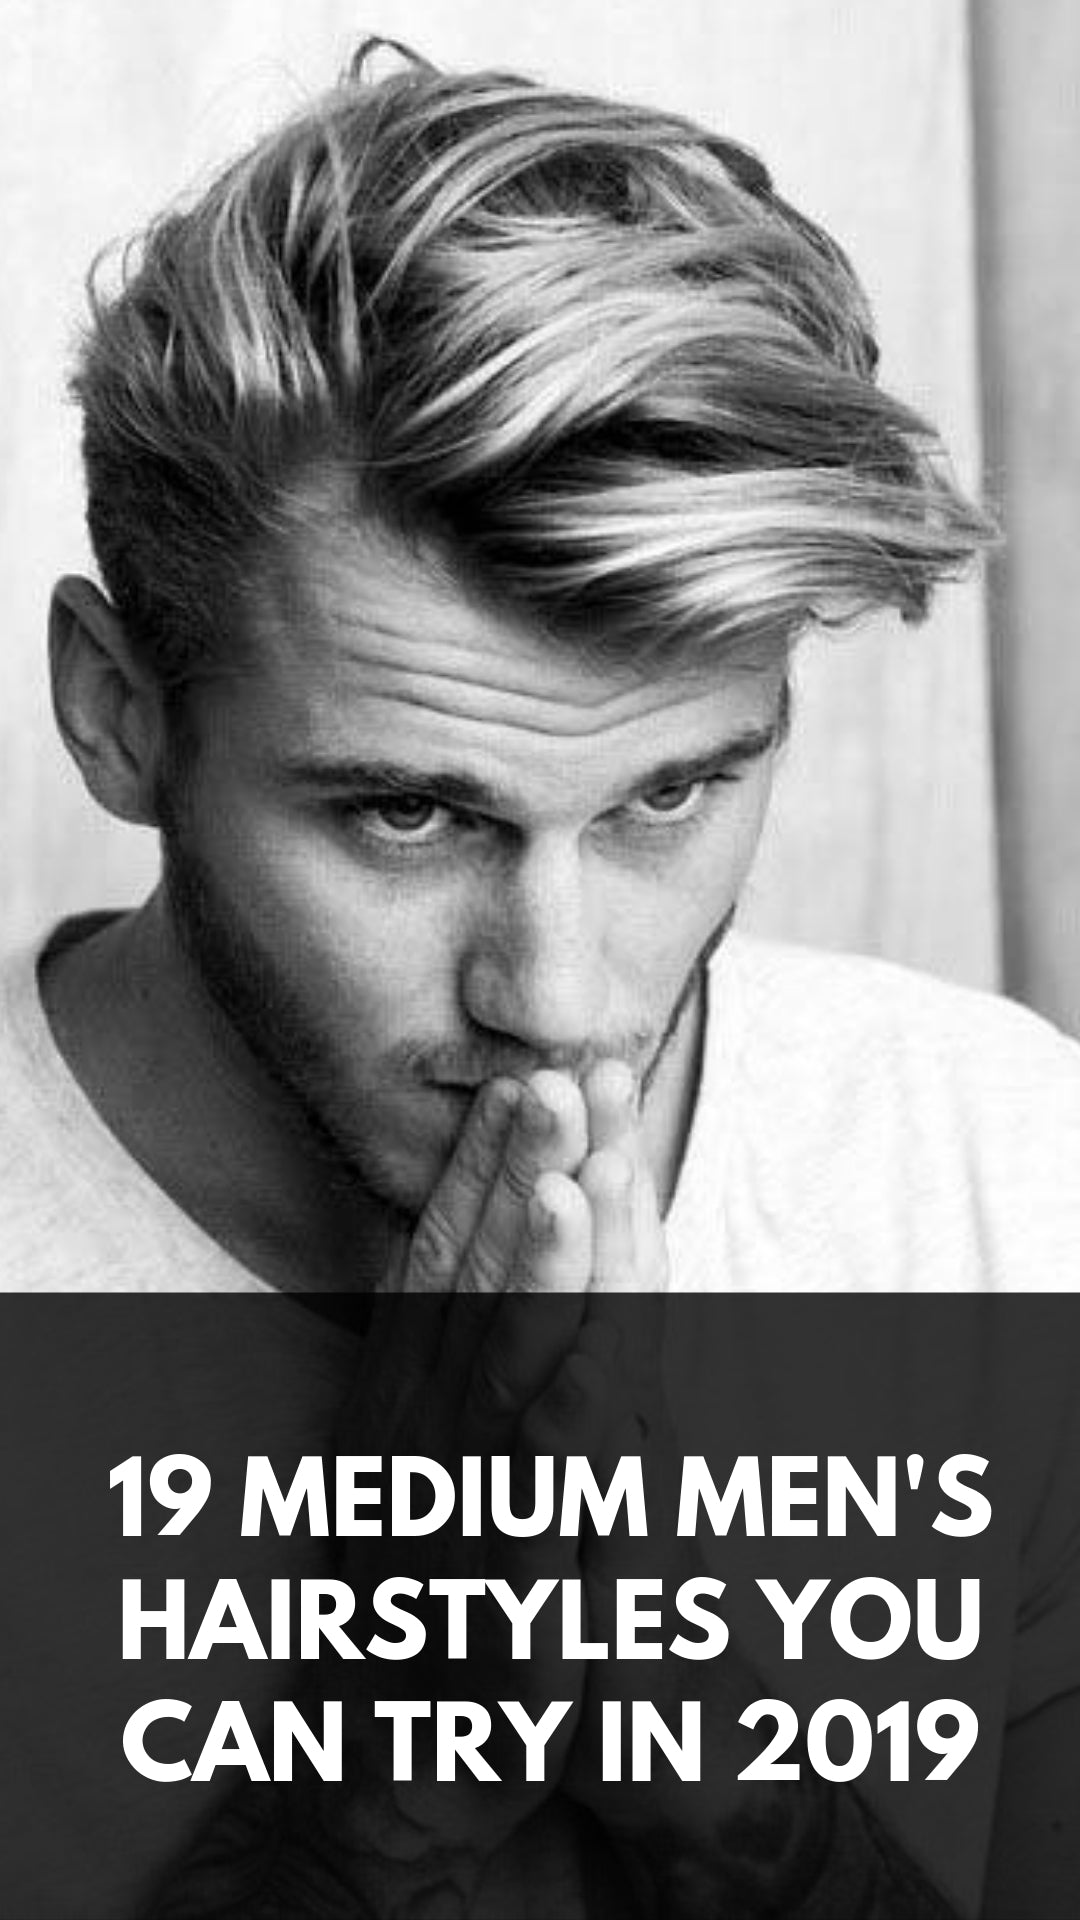 19 Medium Men's Hairstyles You Can Try In 2019